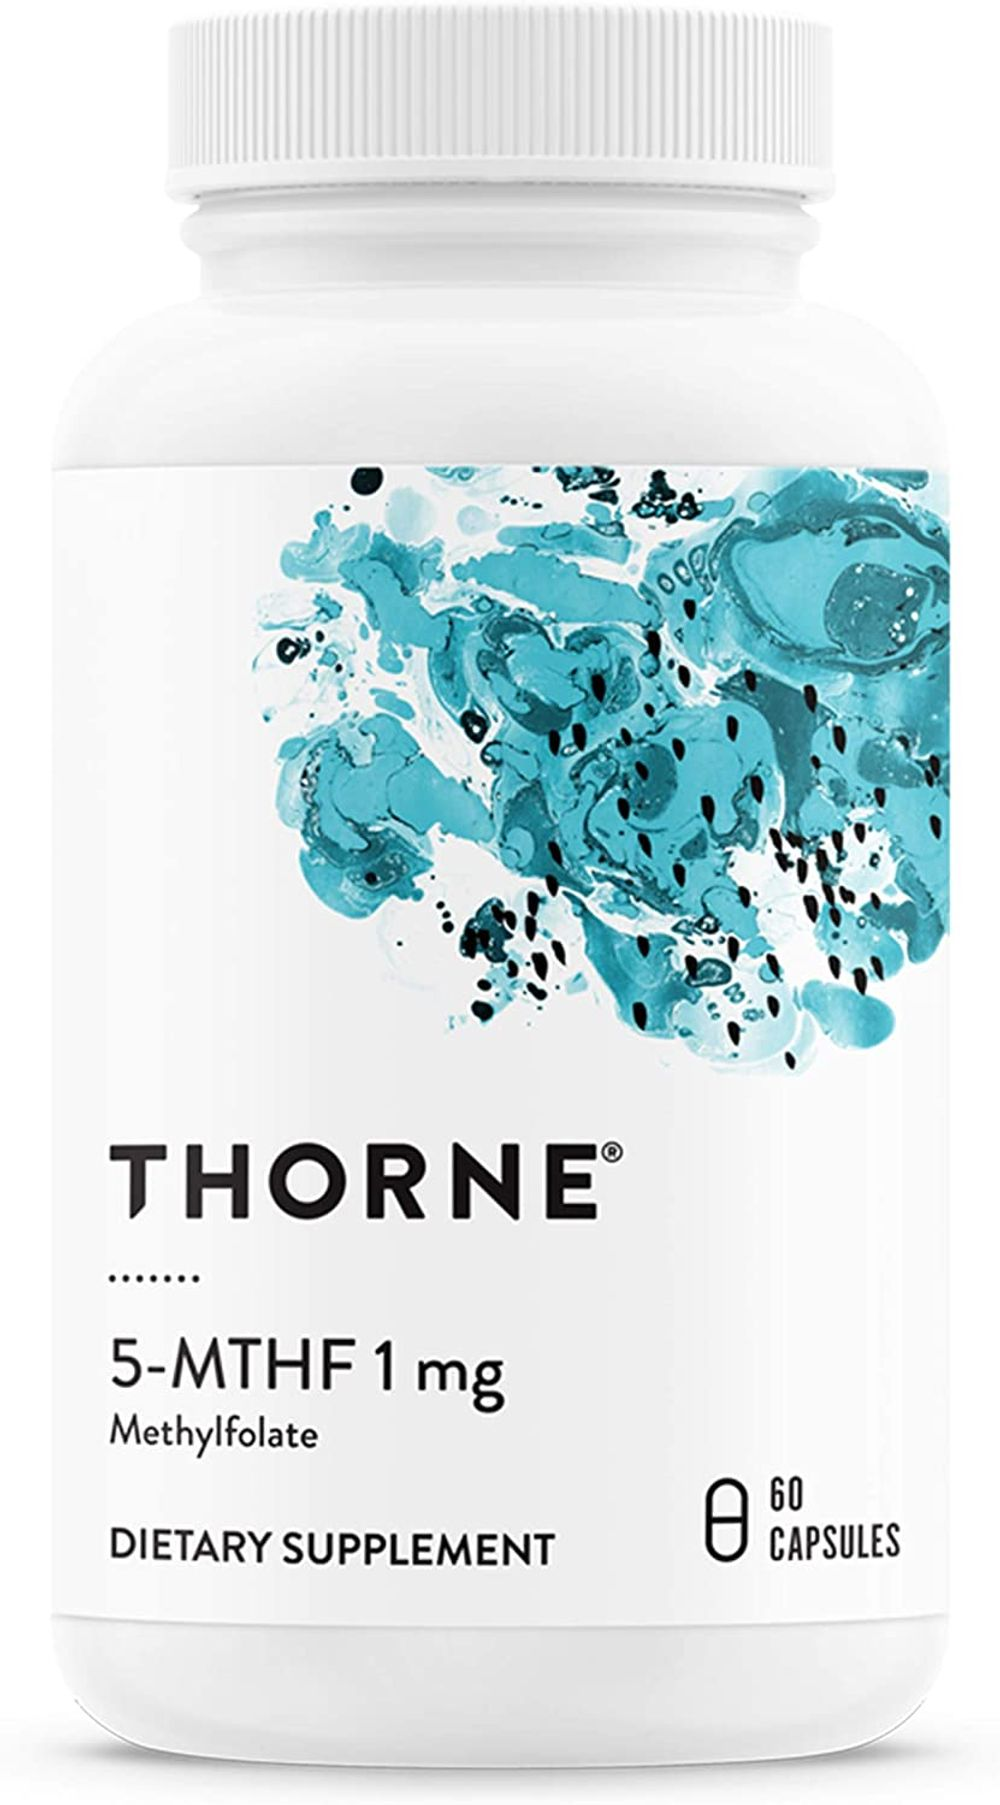 Thorne Research - 5-MTHF 1 mg Folate - Active Vitamin B9 Folate Supplement - 60 Capsules